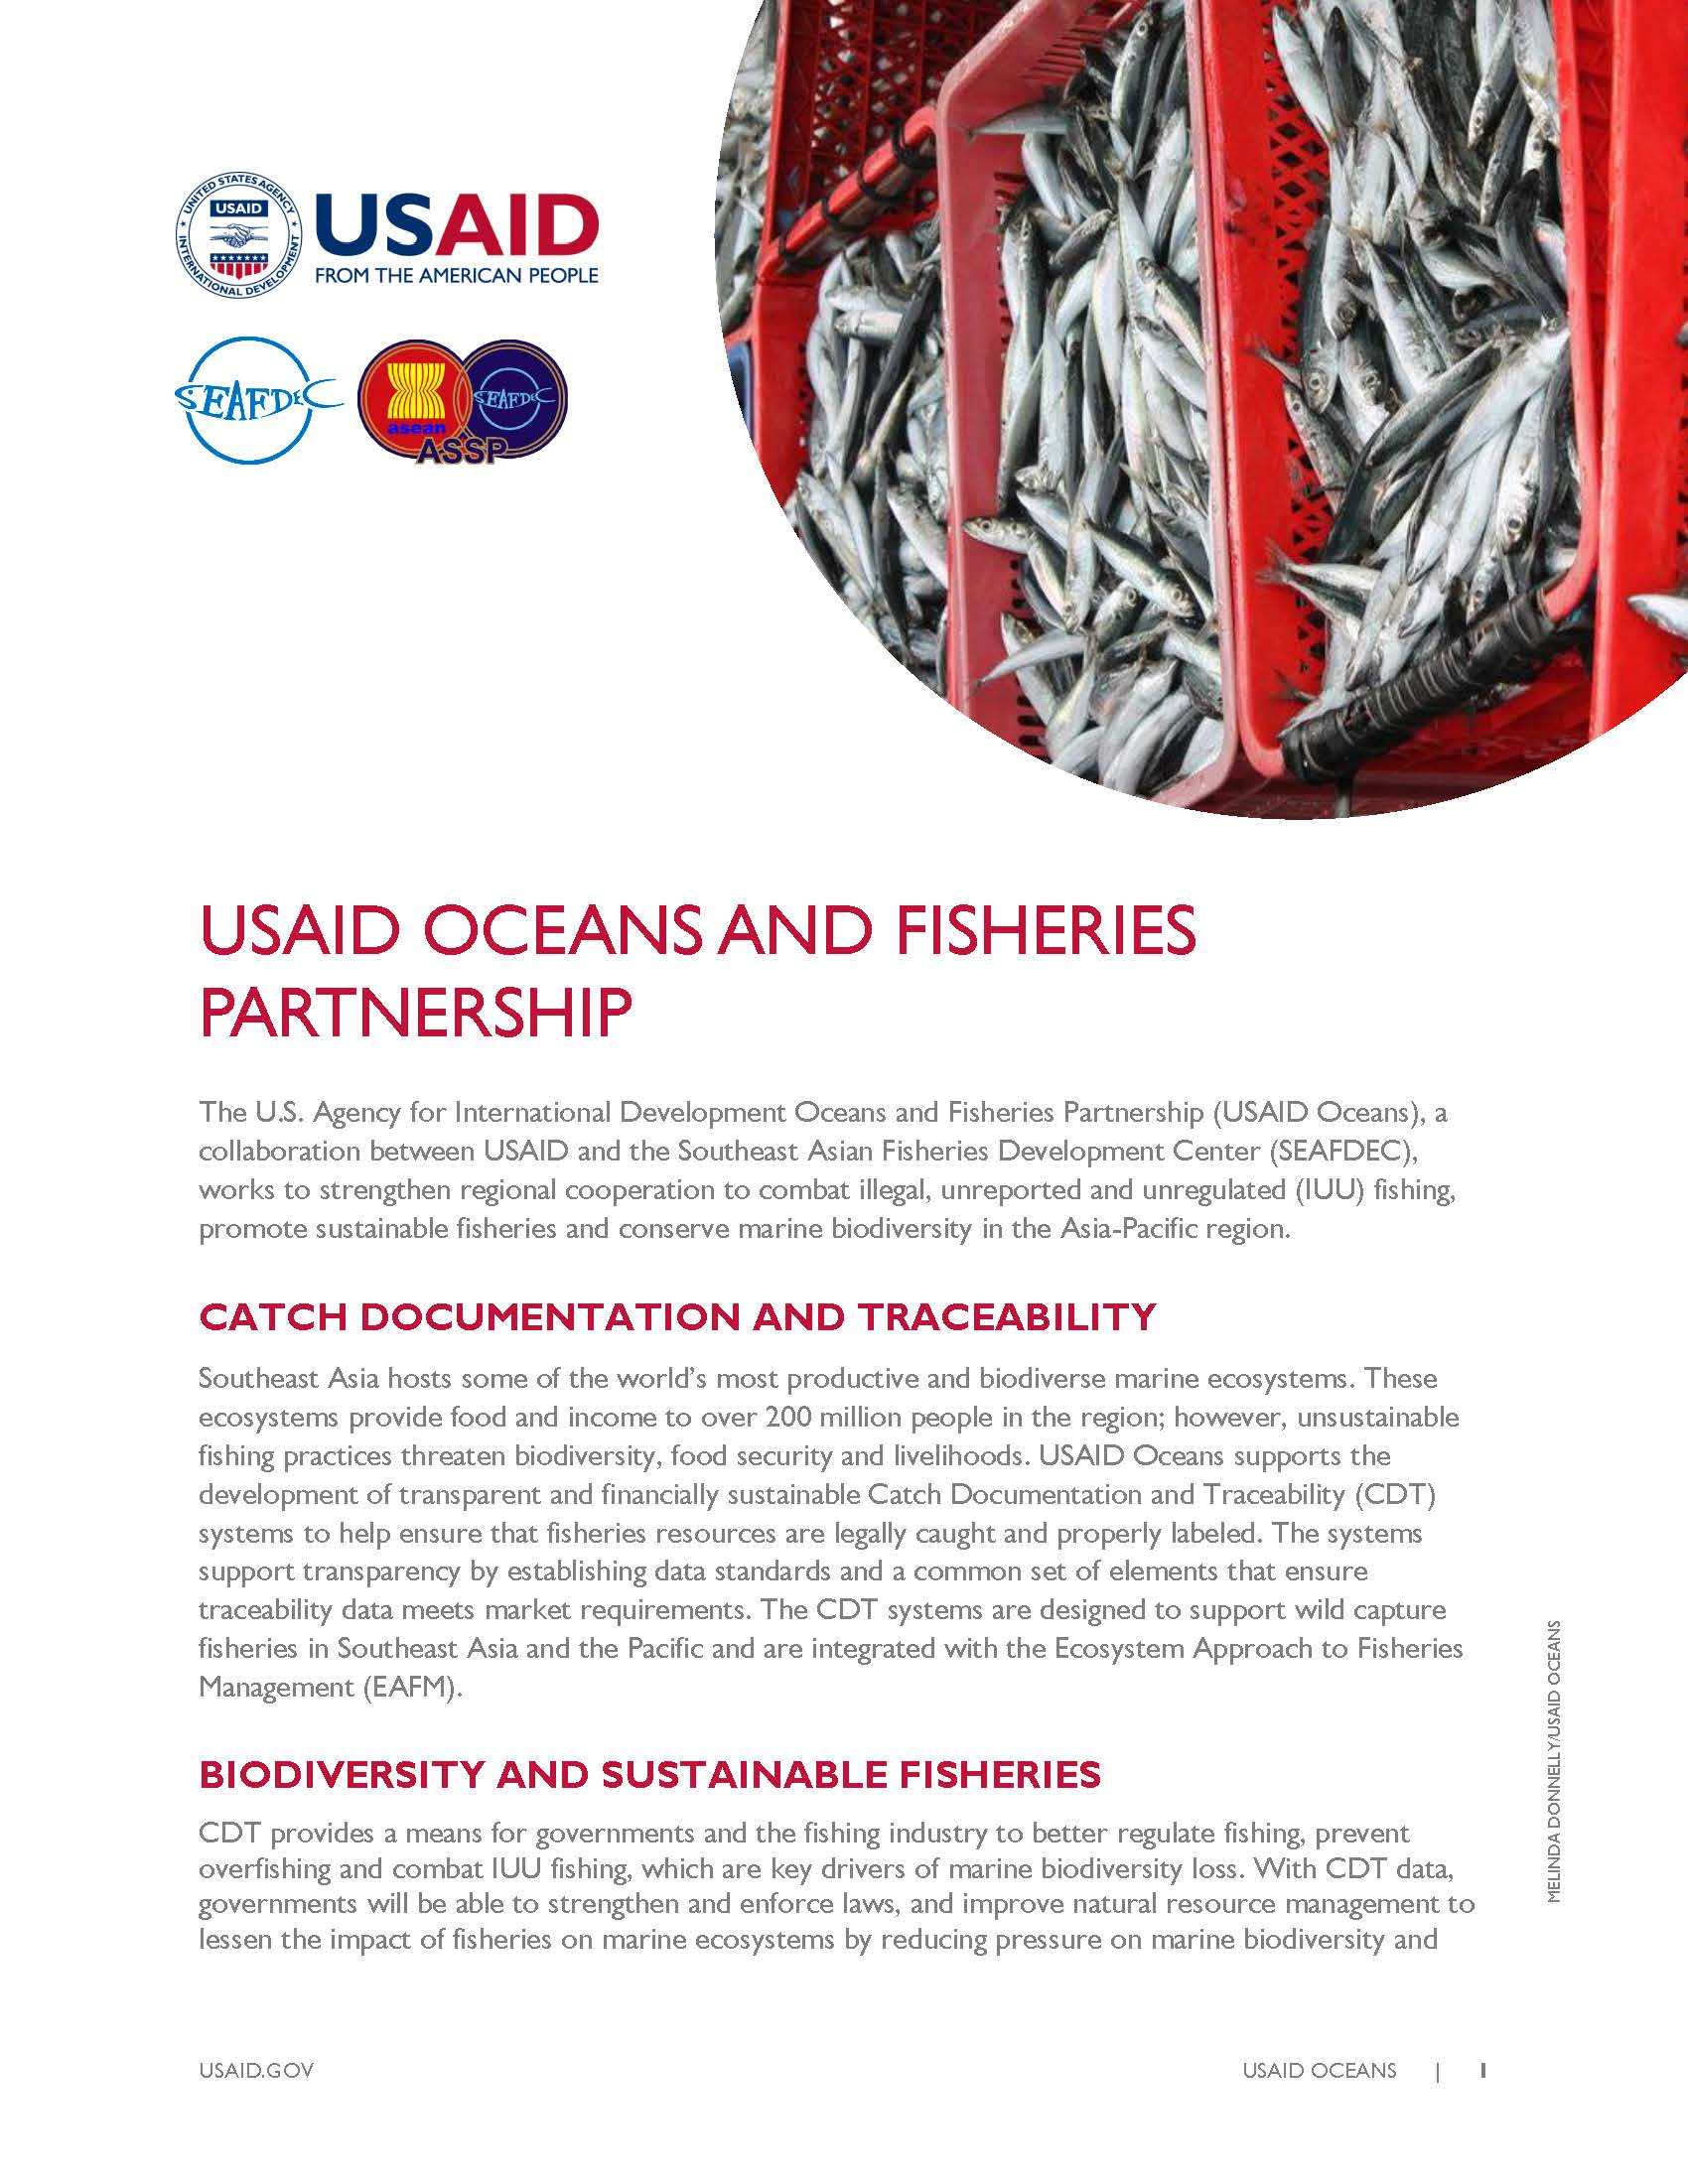 USAID Oceans Fact Sheet